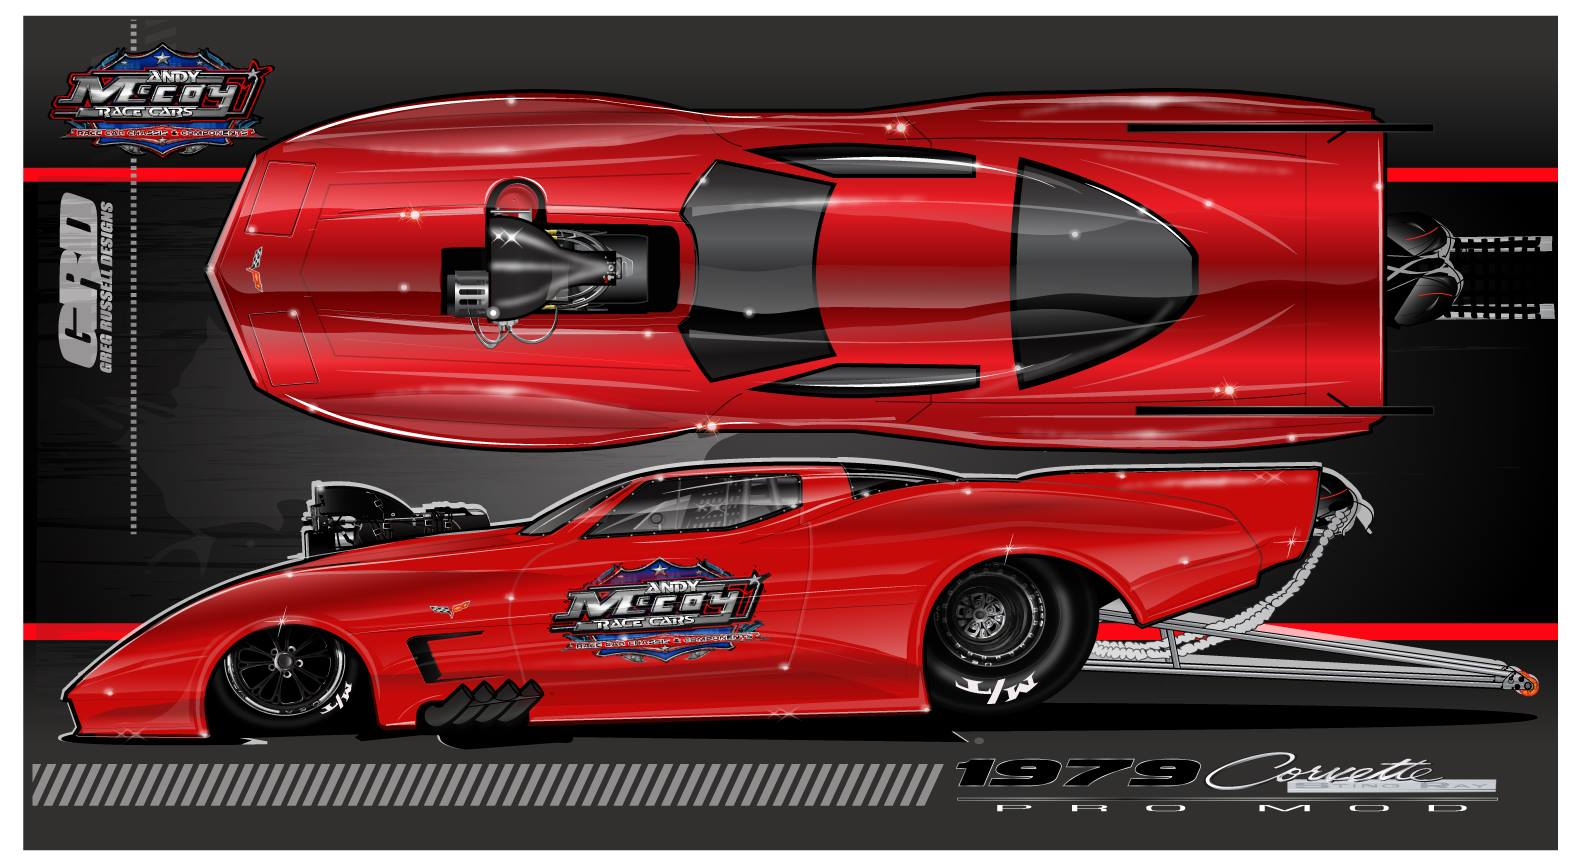 Andy Mccoy Race Cars Reveals 1979 C3 Corvette Doorslammer Body